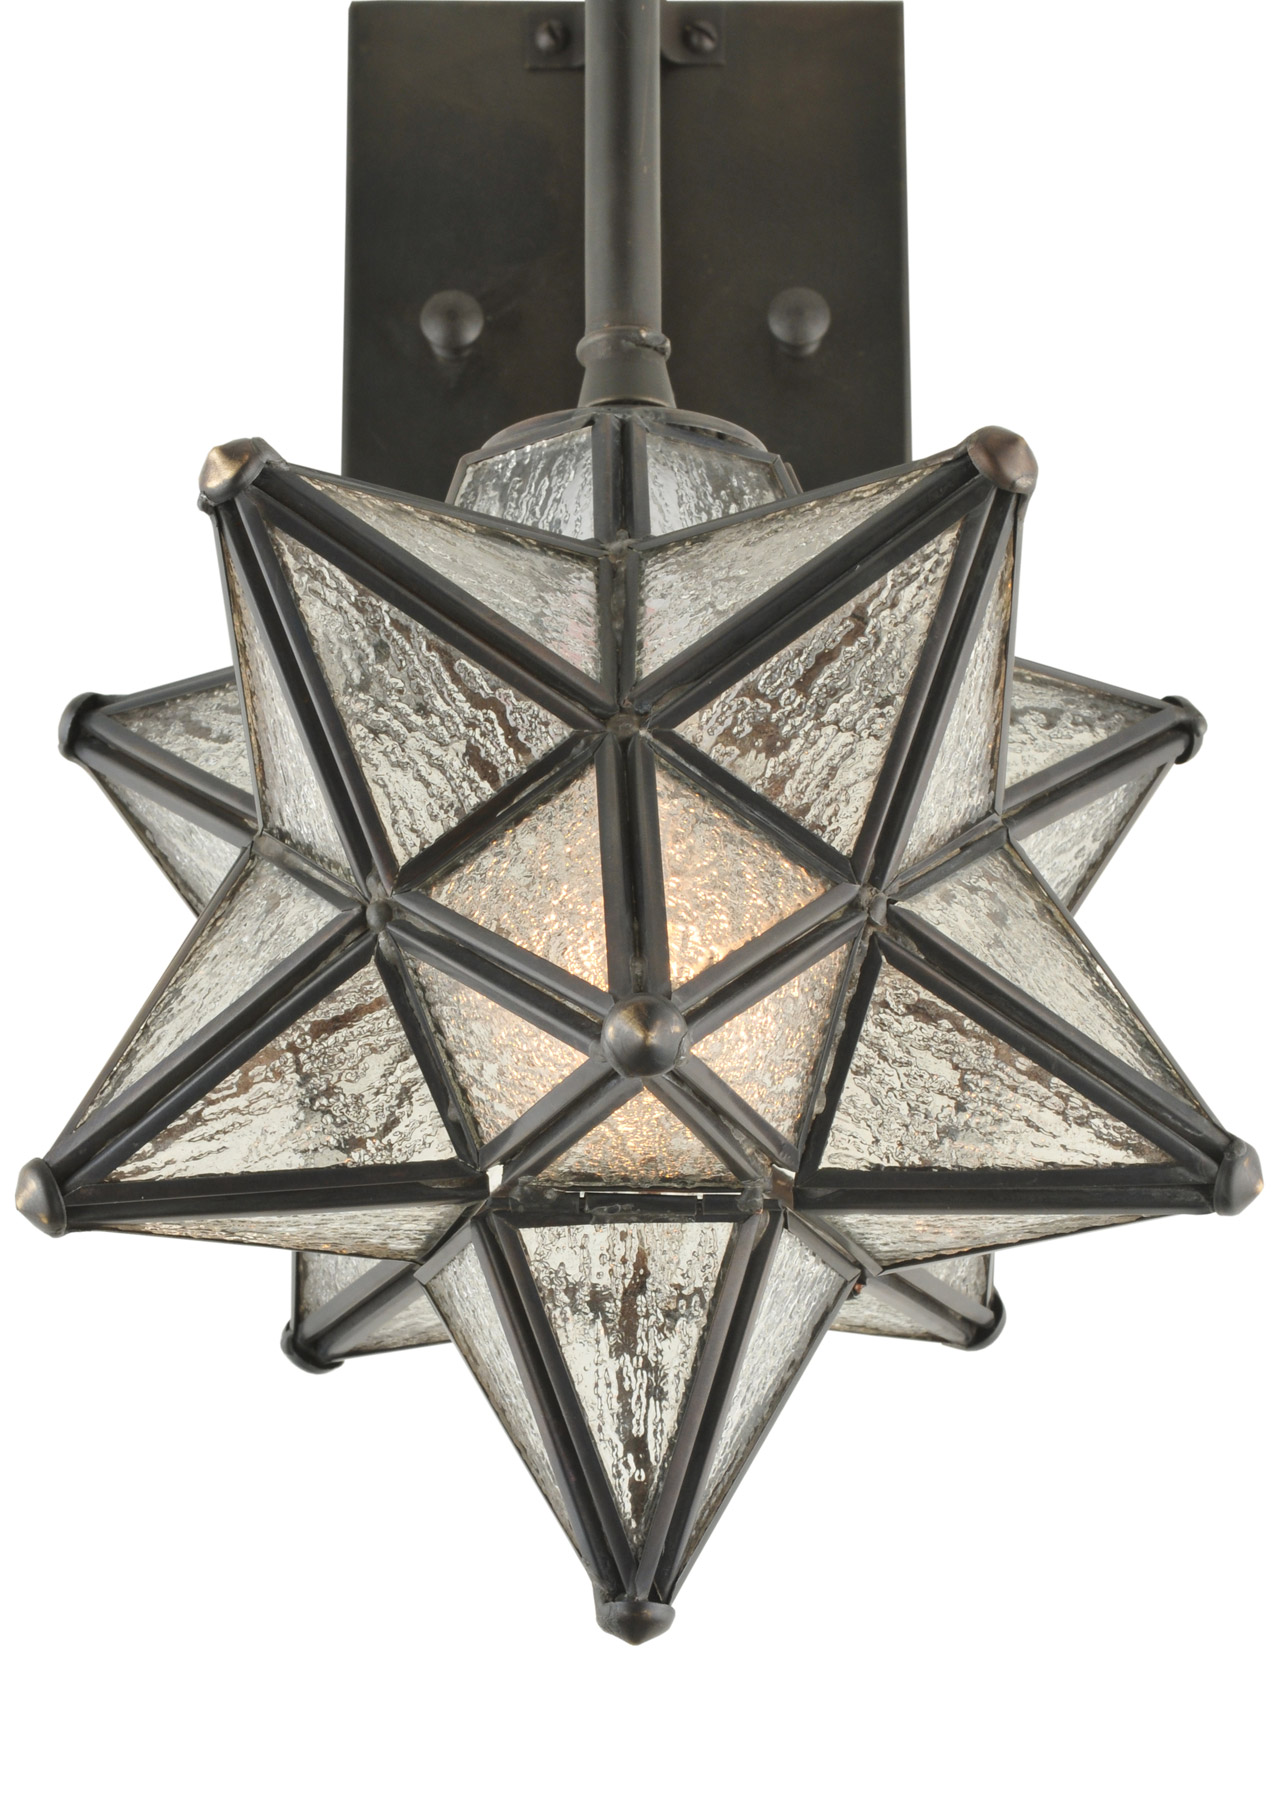 Wall Sconce With Star : Meyda 119794 Moravian Star Wall Sconce